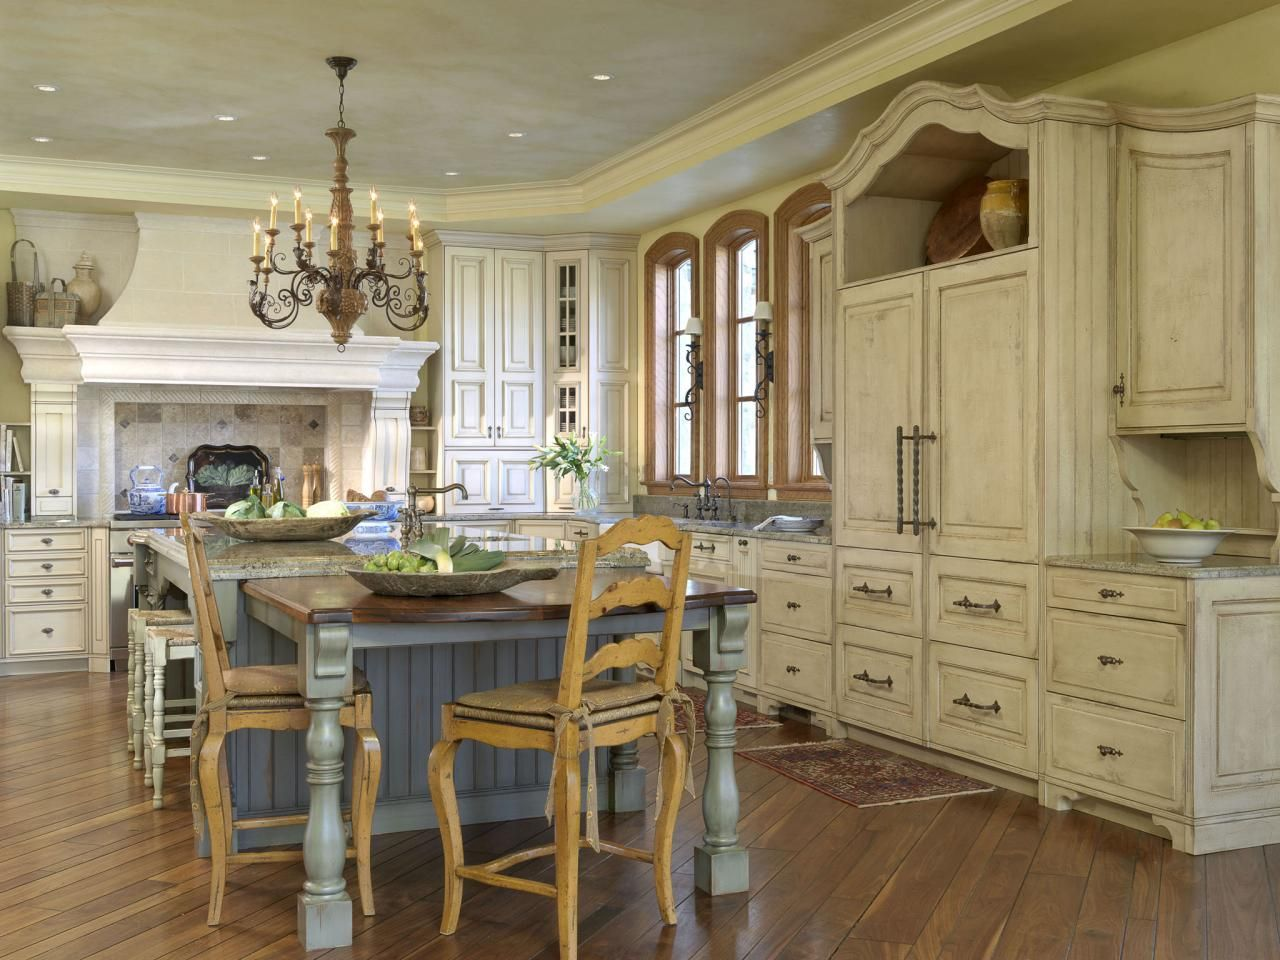 Antique kitchen islands pictures ideas u tips from contemporary